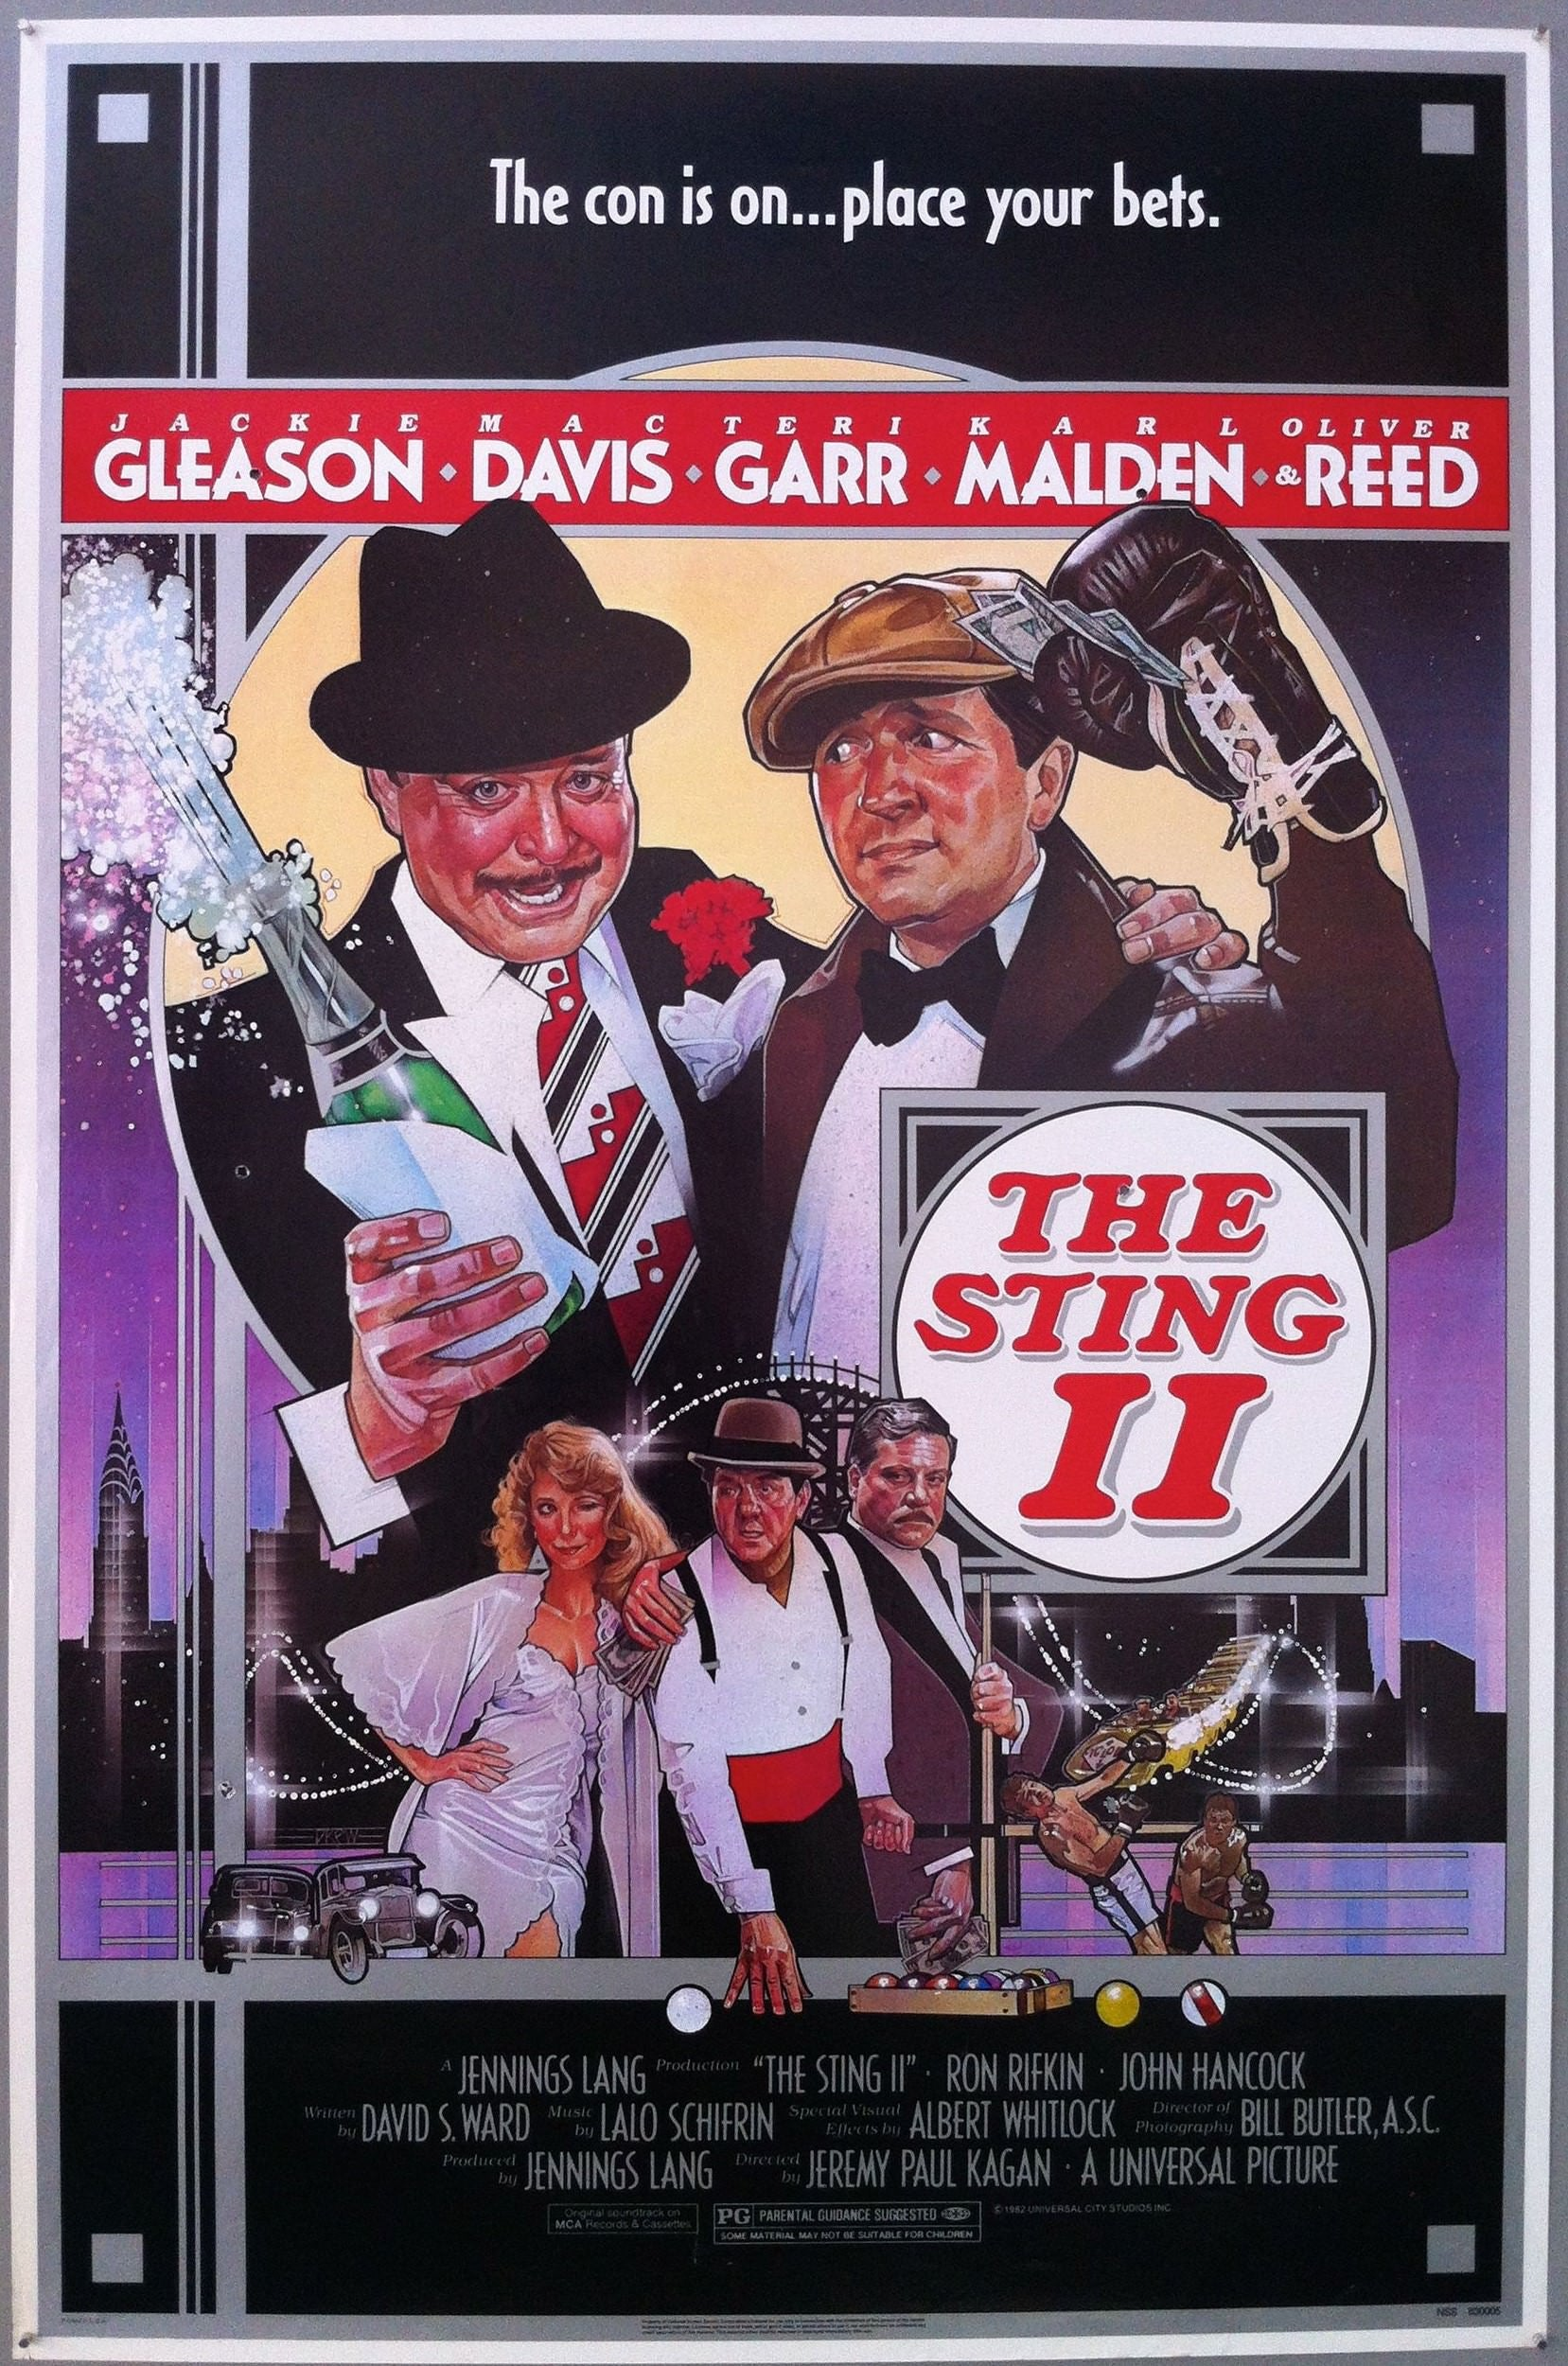 The Sting 2